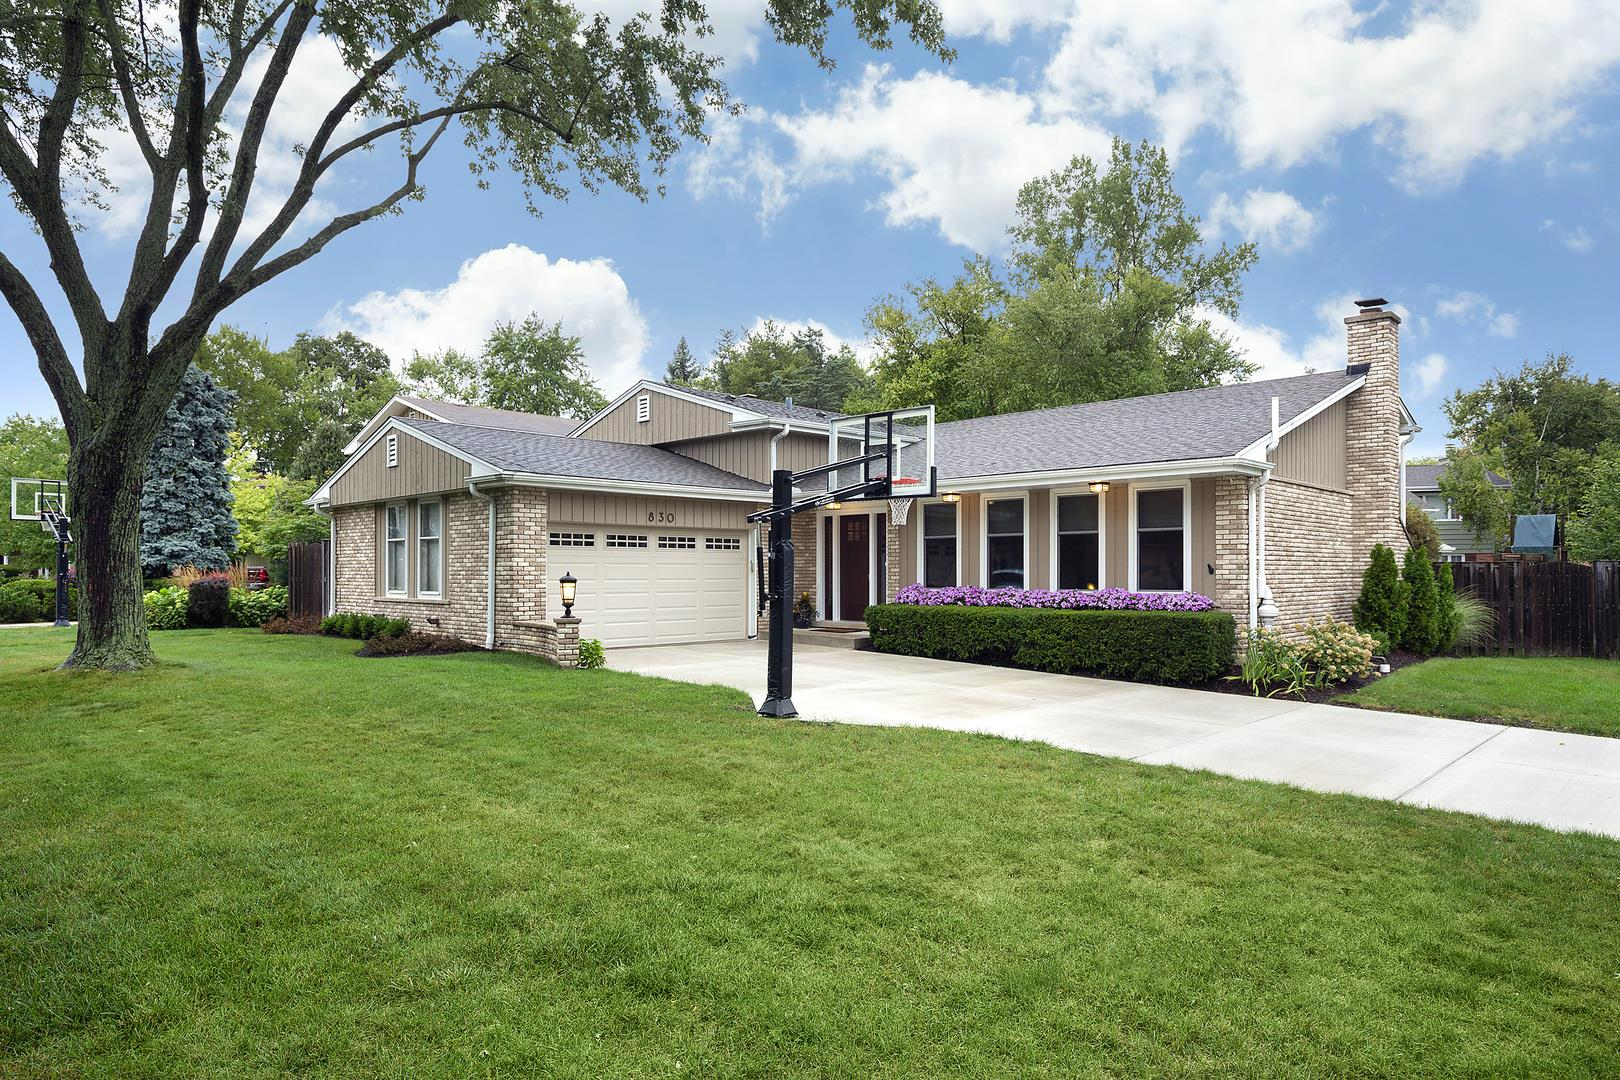 830 Deere Park Court, Deerfield, IL 60015 - #: 10991456